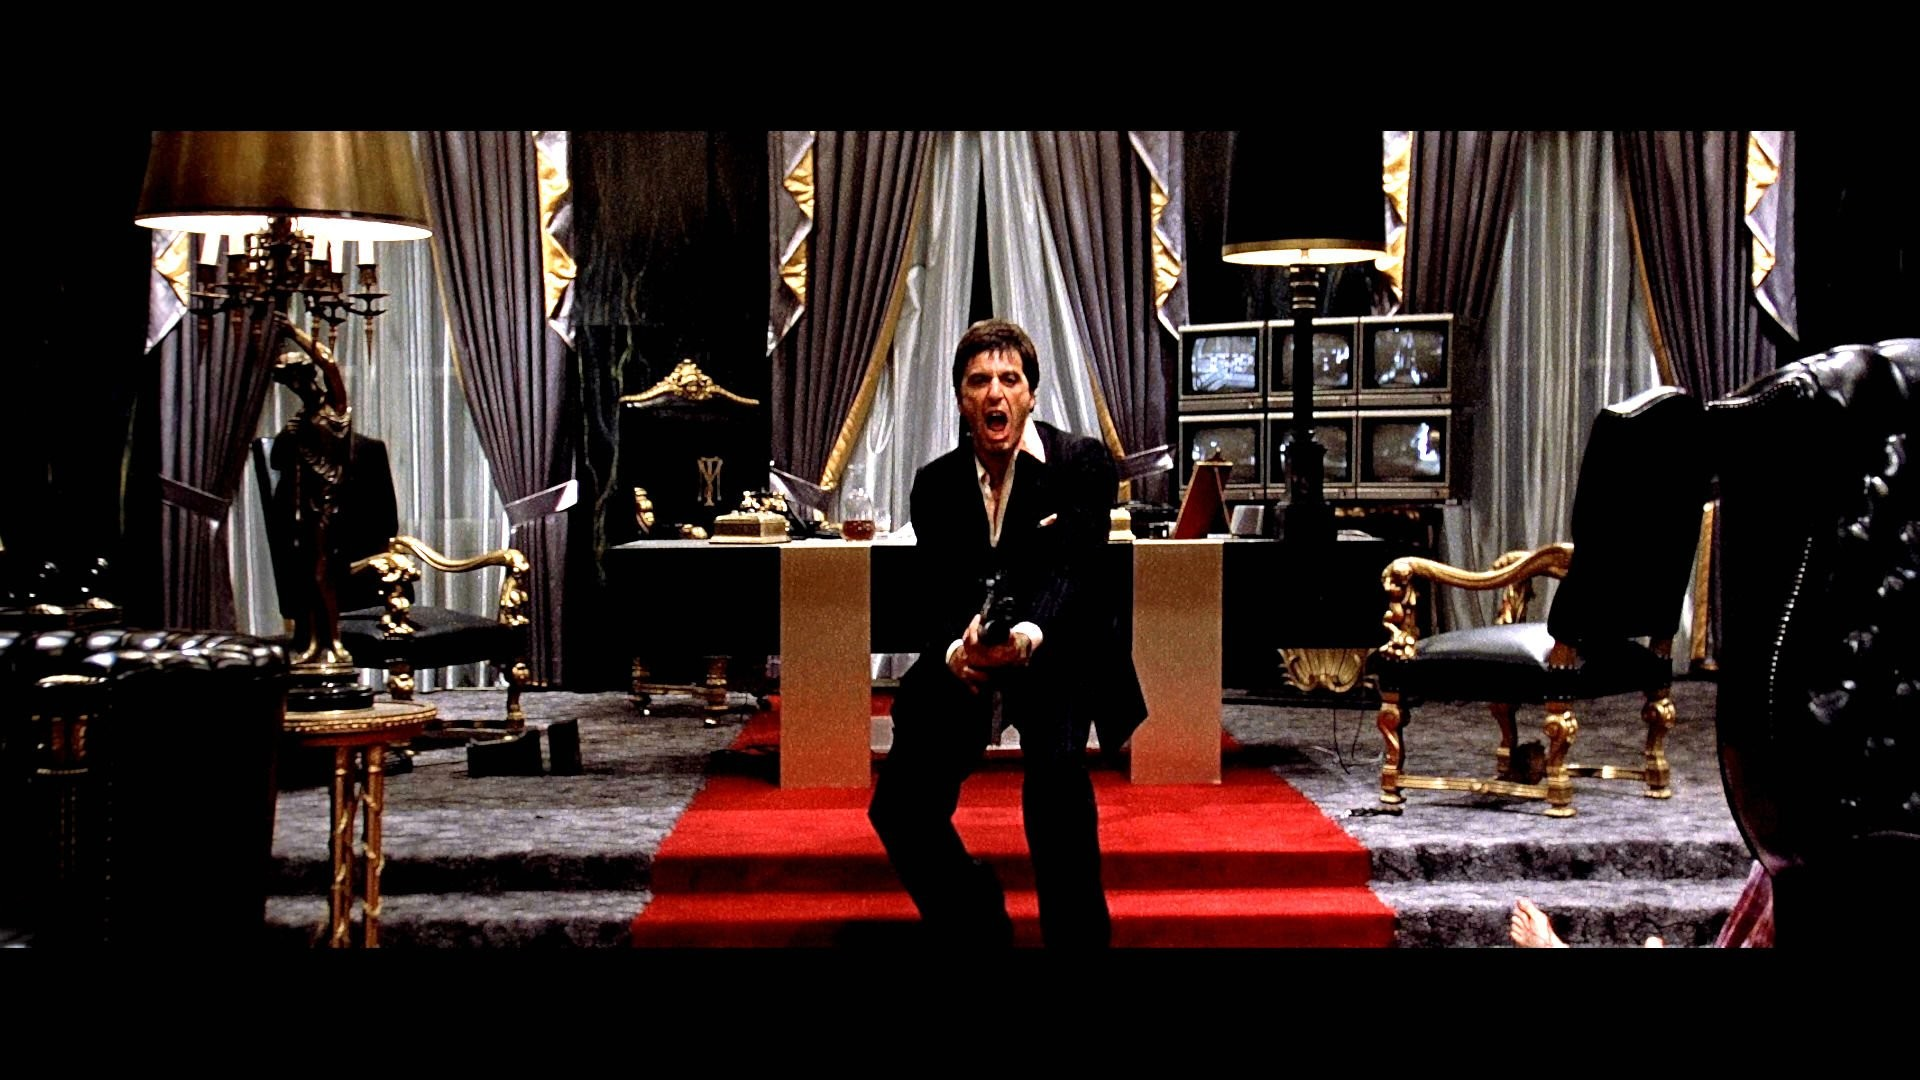 Scarface wallpapers 80 background pictures - Money hd wallpapers 1080p ...